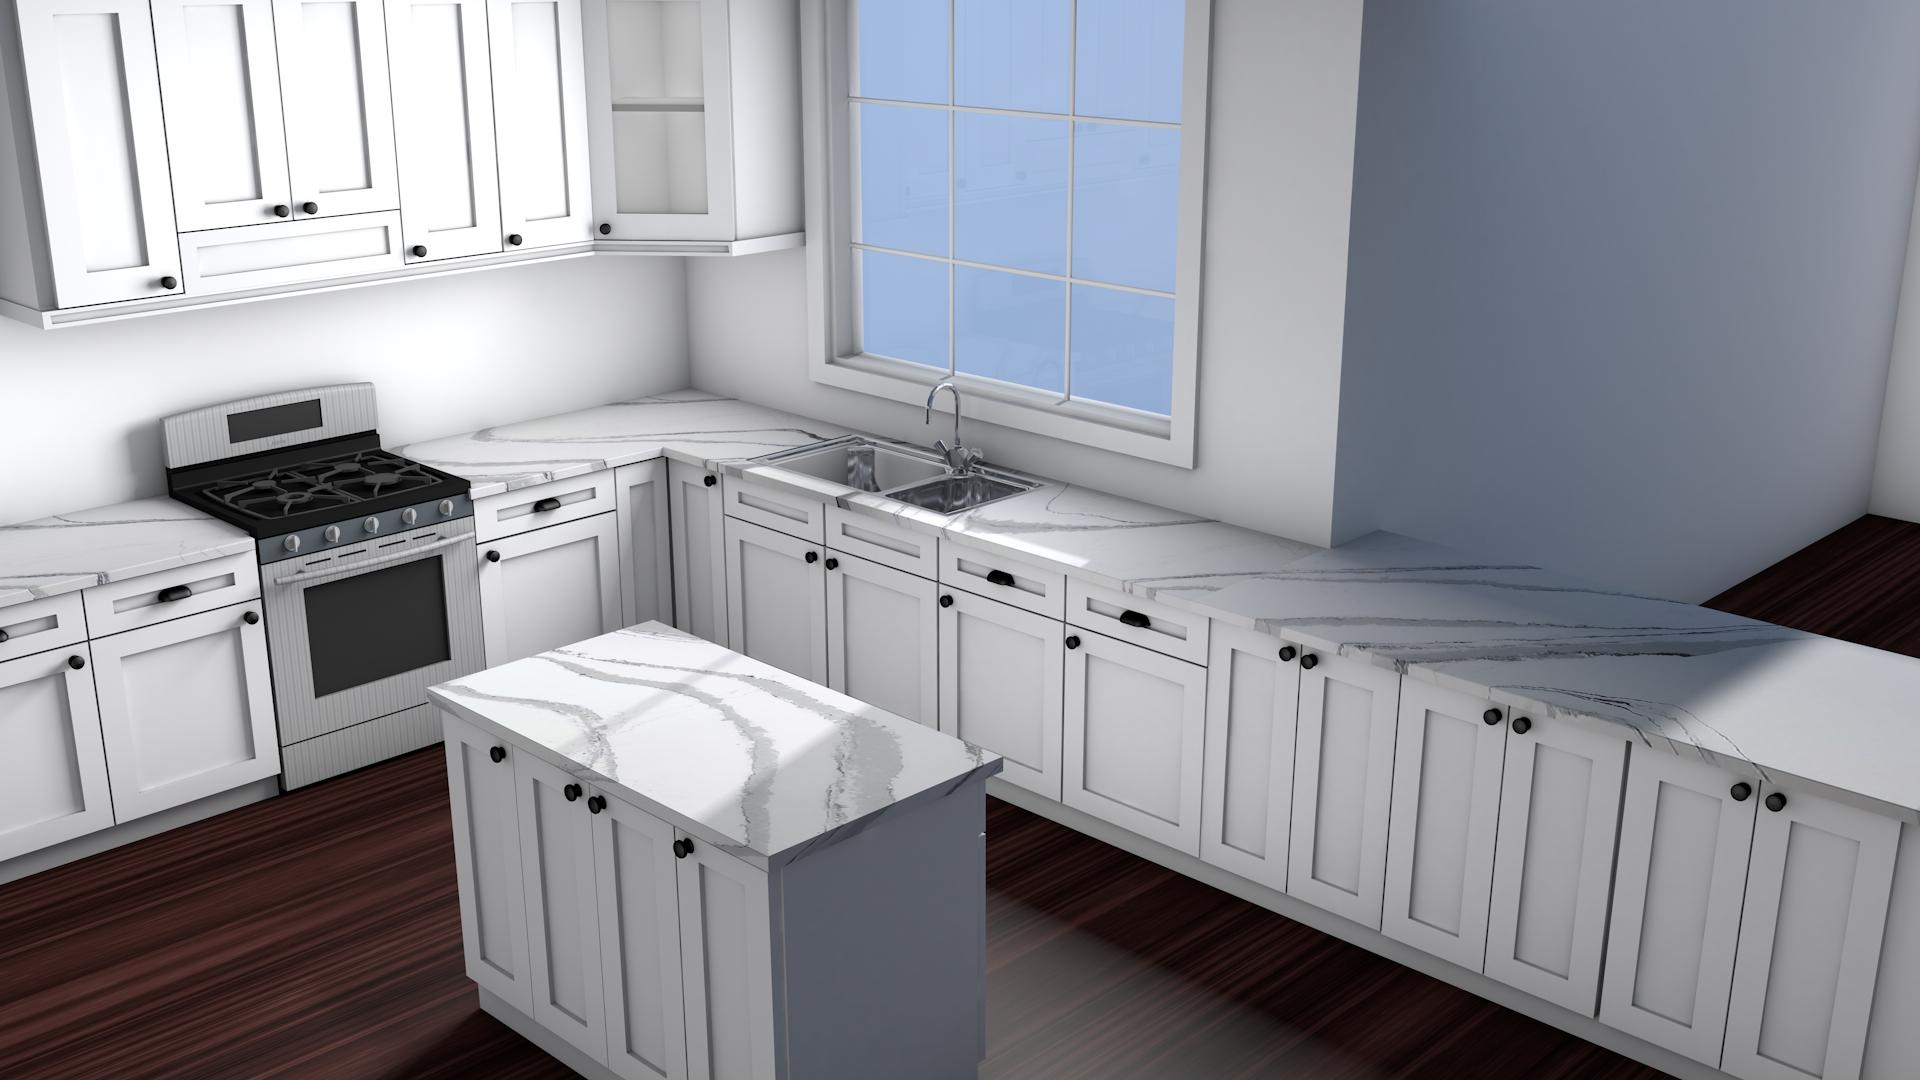 Countertops & Cabinets by Max Granite image 5